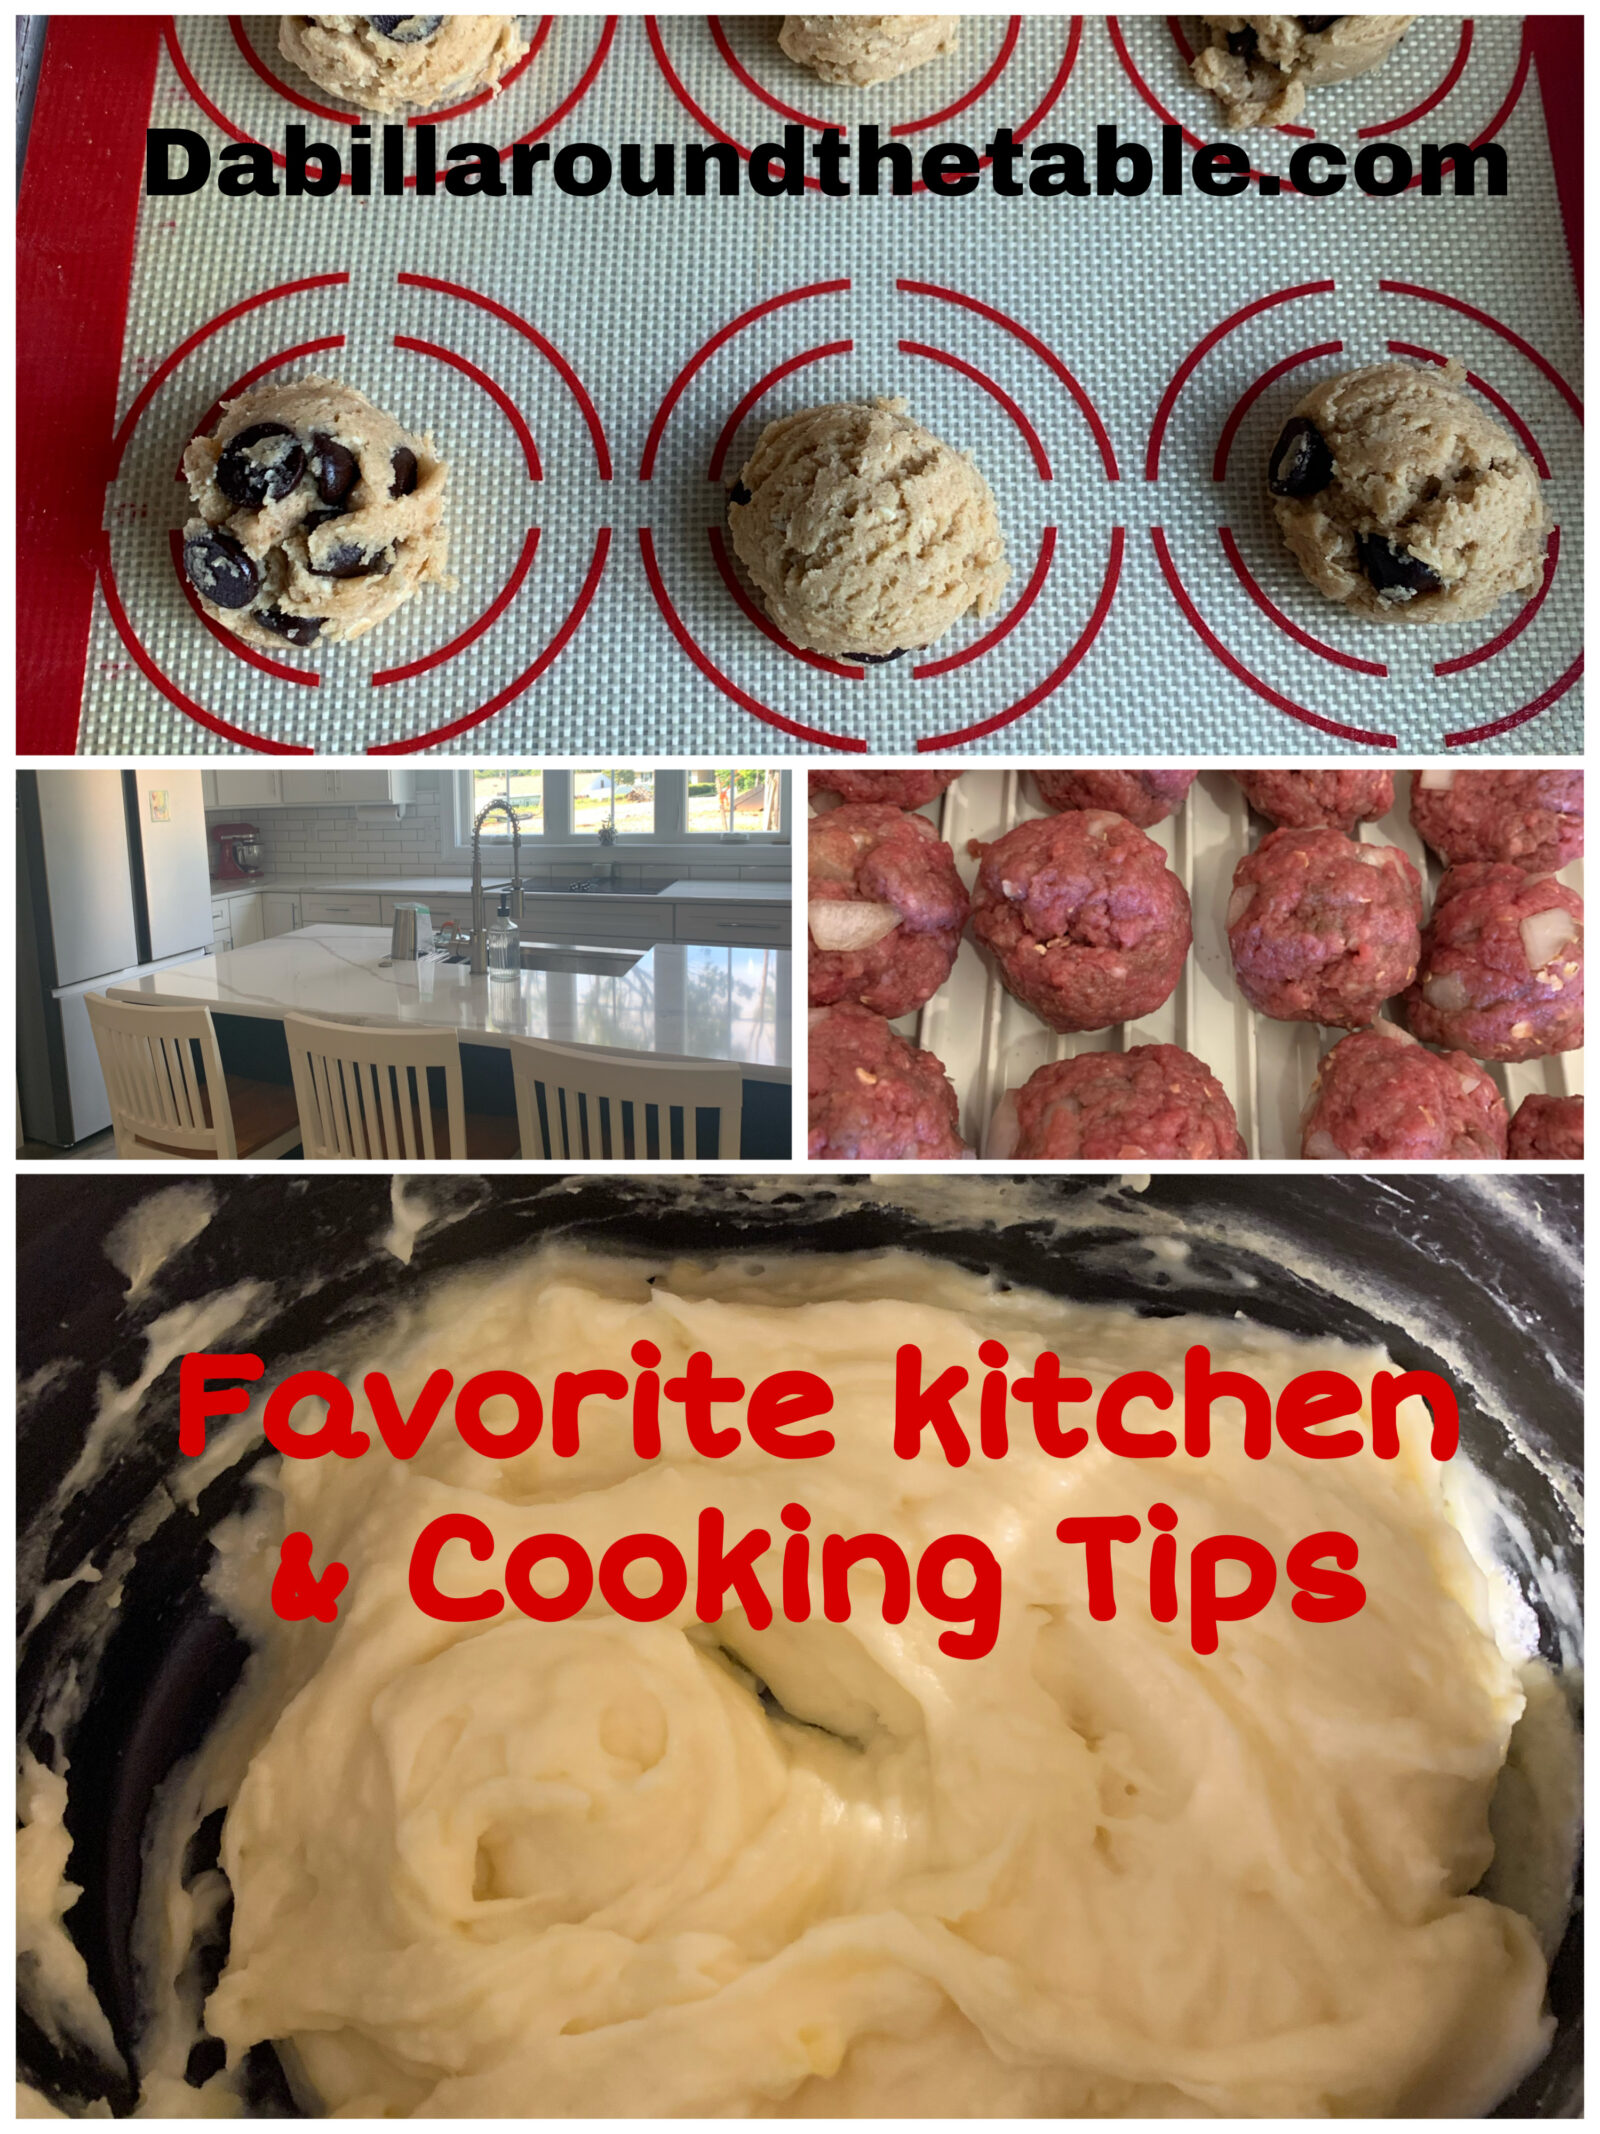 Favorite Kitchen and Cooking Tips